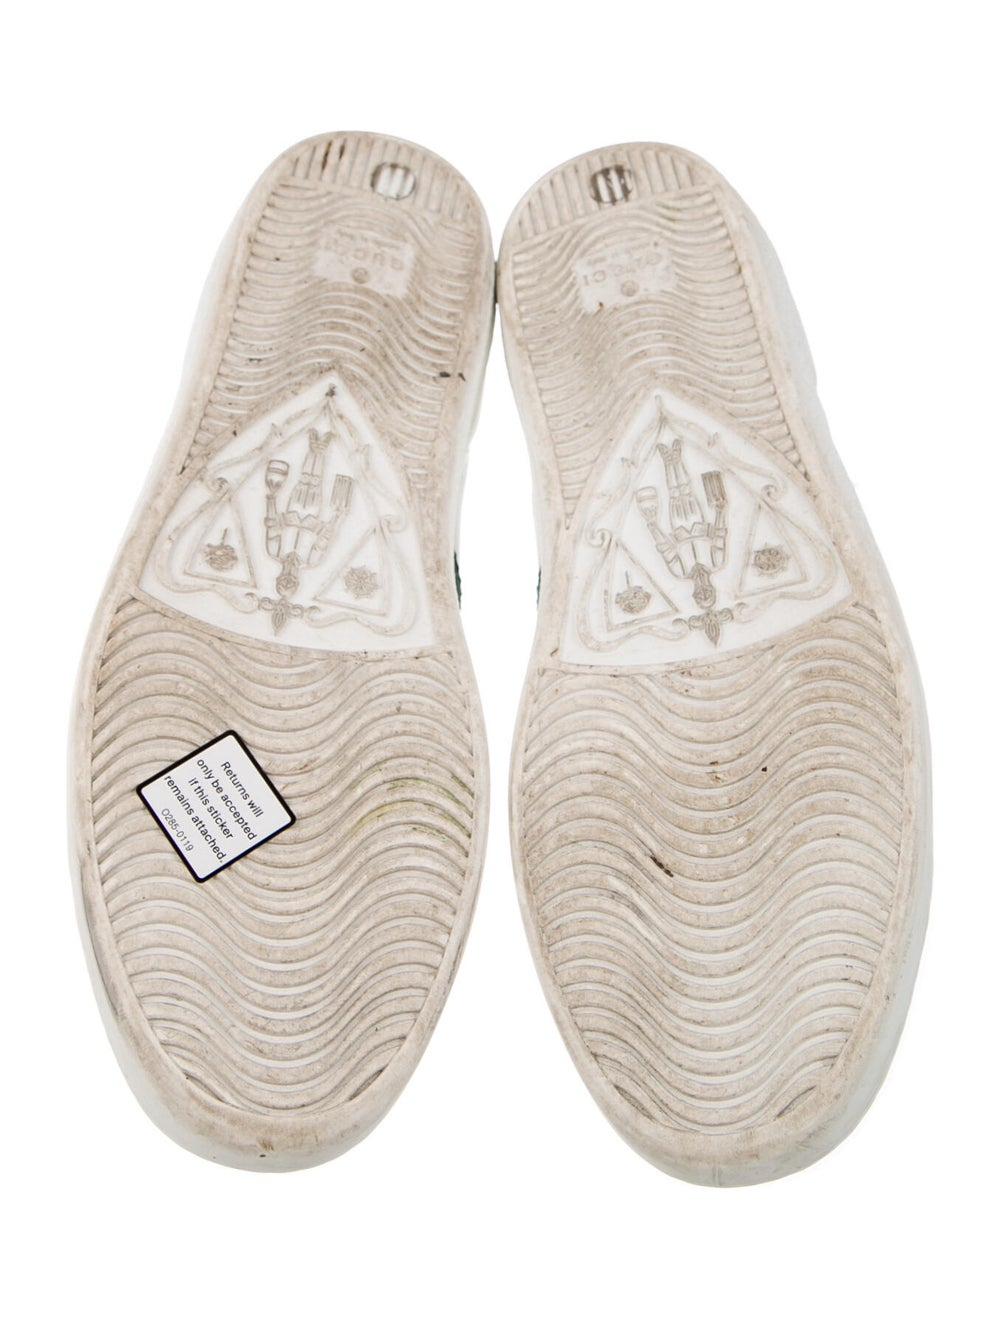 Gucci Leather Sneakers White - image 5